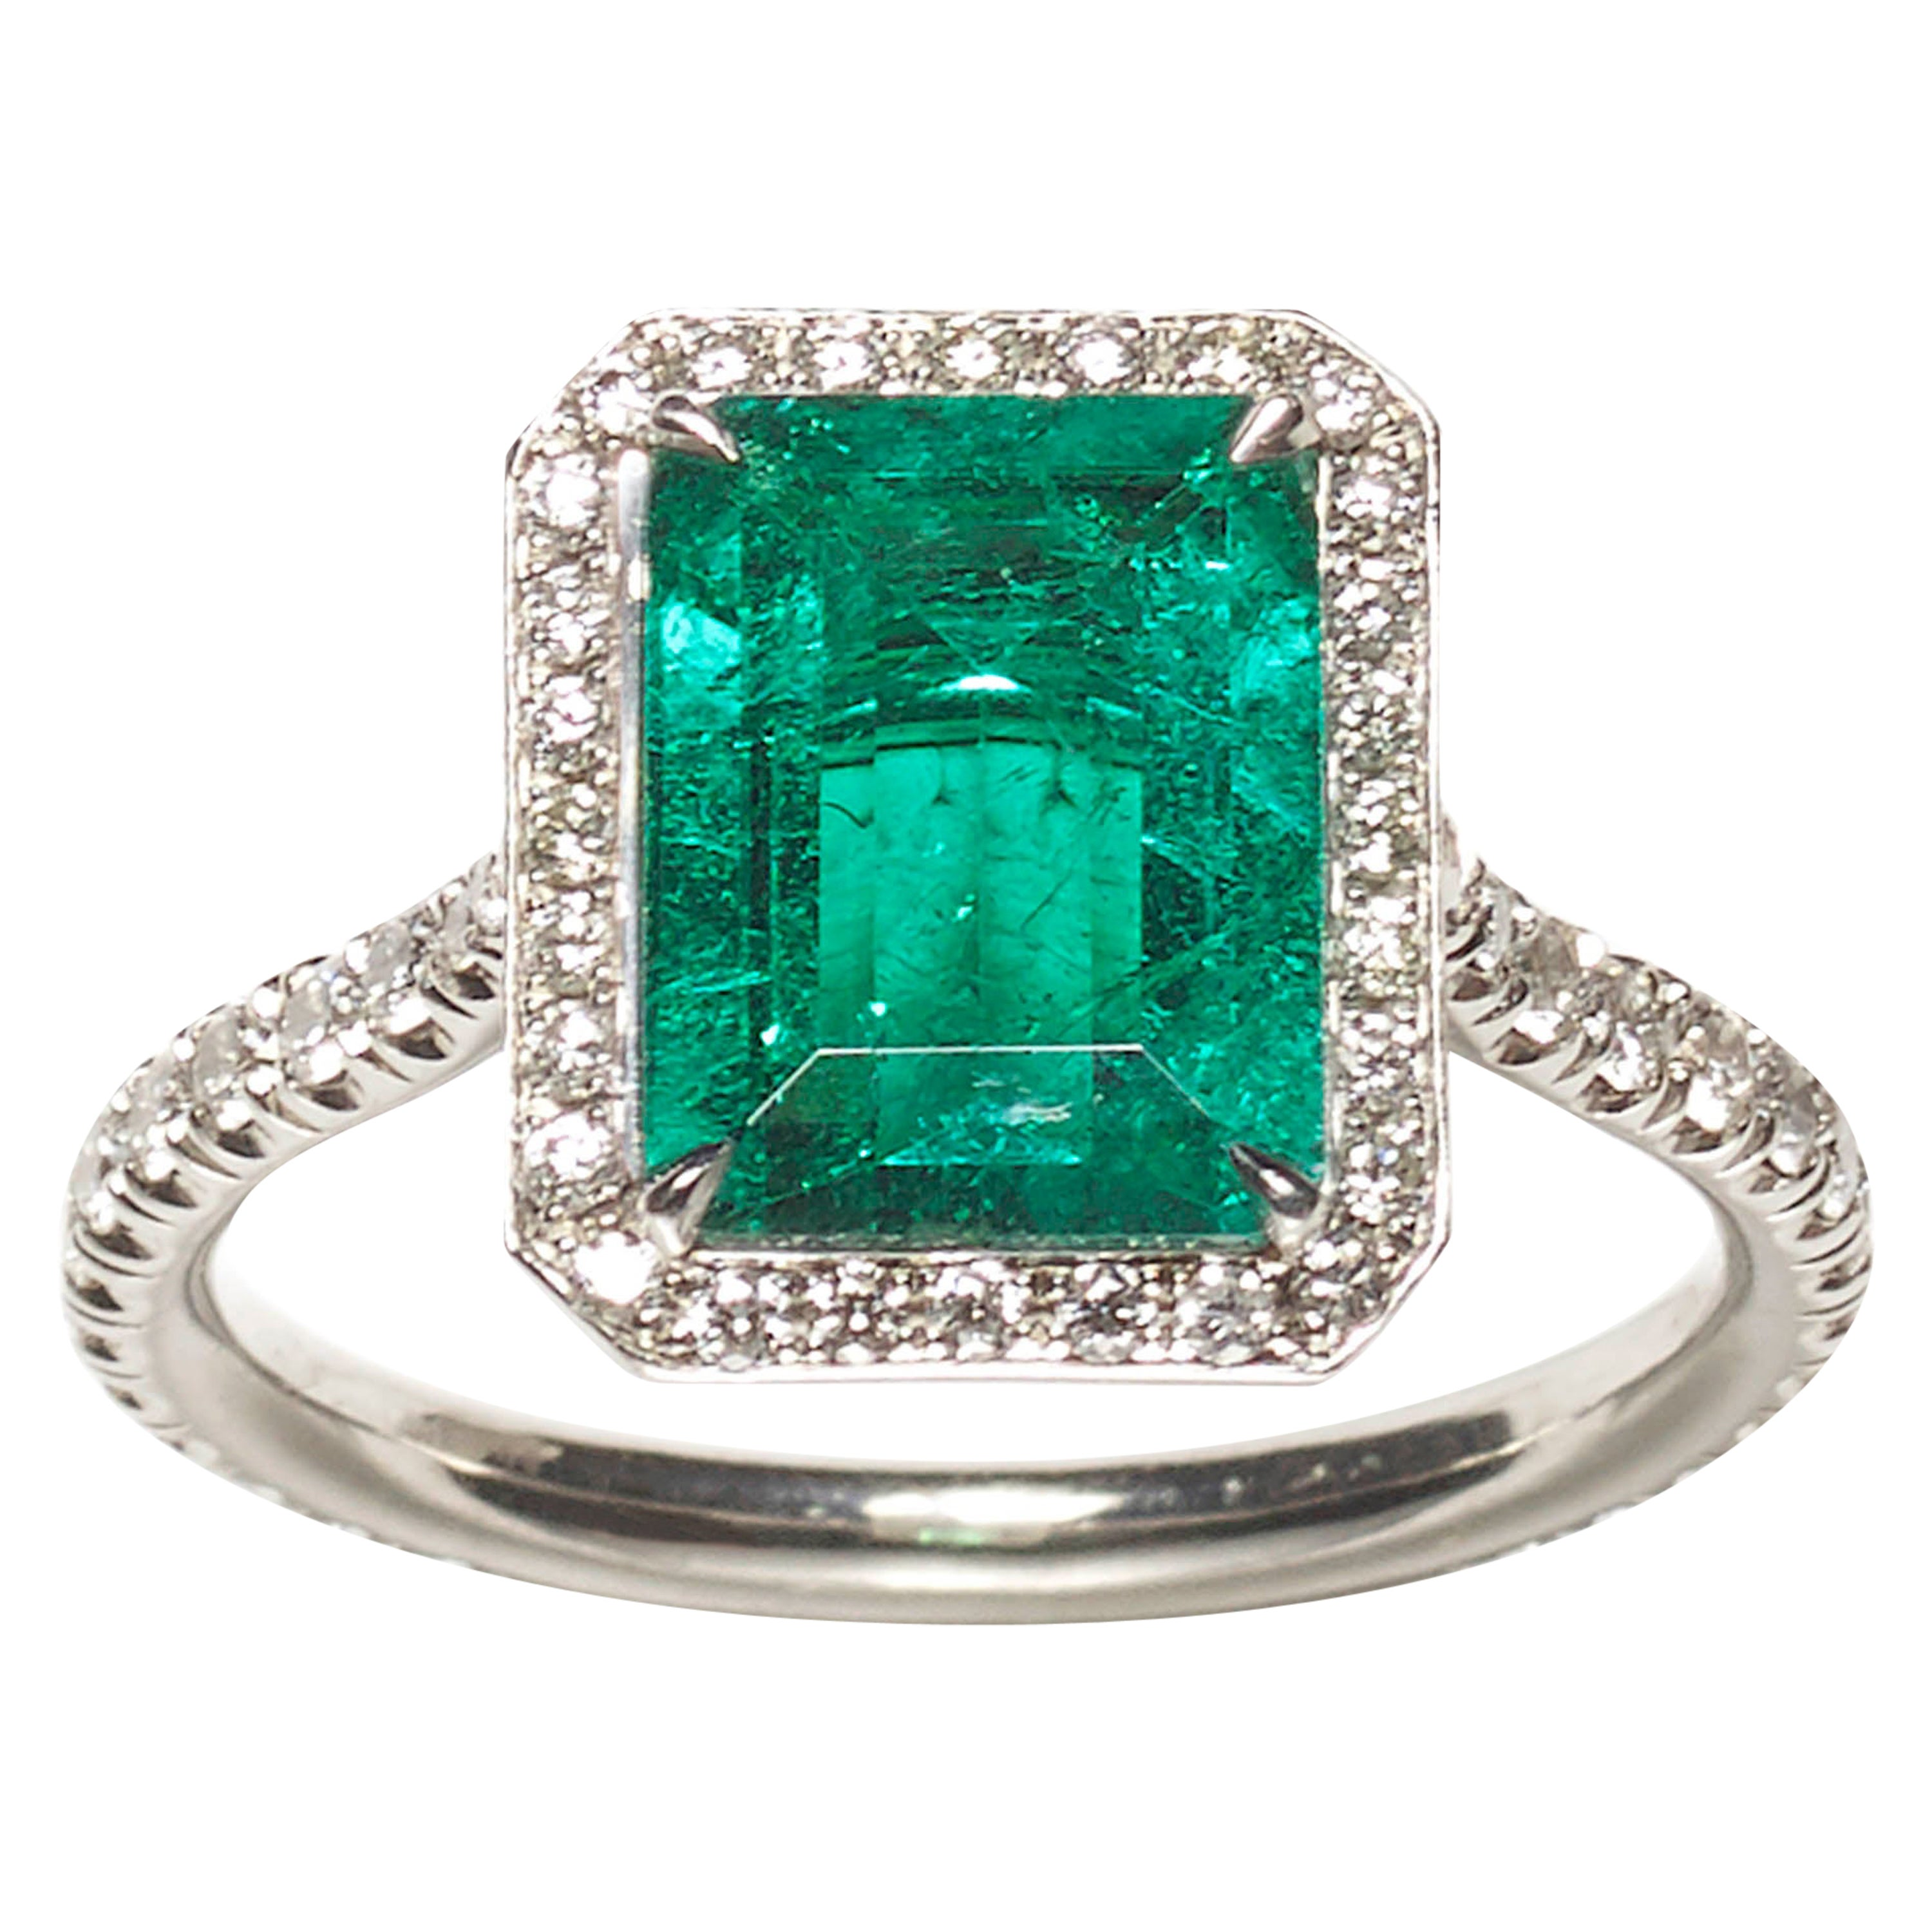 Modern Emerald Diamond and White Gold Ring, 2.03 Carat